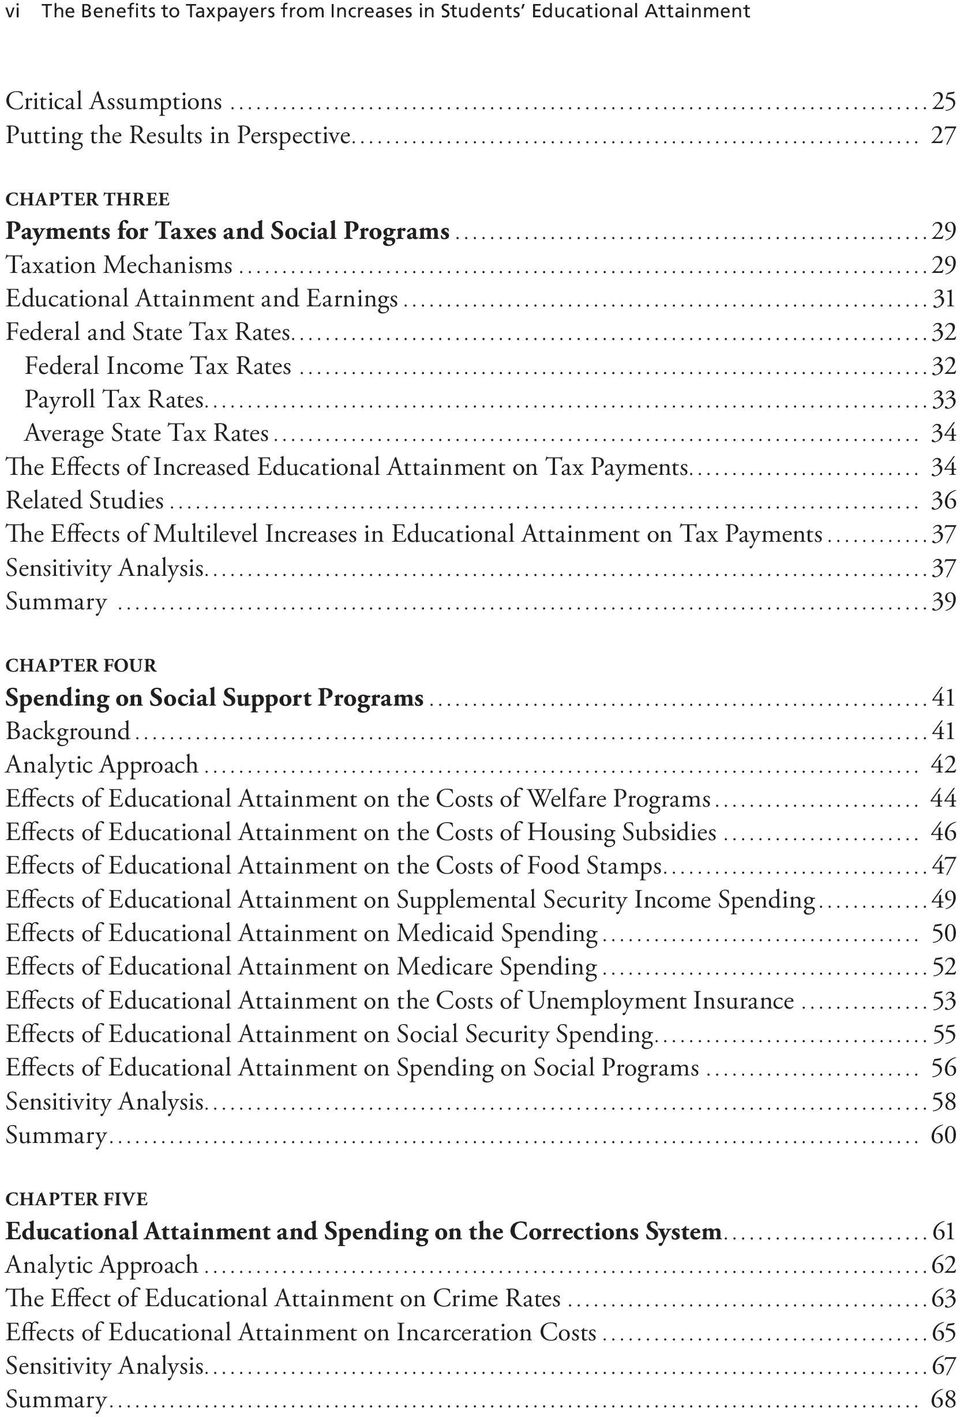 .. 34 The Effects of Increased Educational Attainment on Tax Payments... 34 Related Studies... 36 The Effects of Multilevel Increases in Educational Attainment on Tax Payments...37 Sensitivity Analysis.